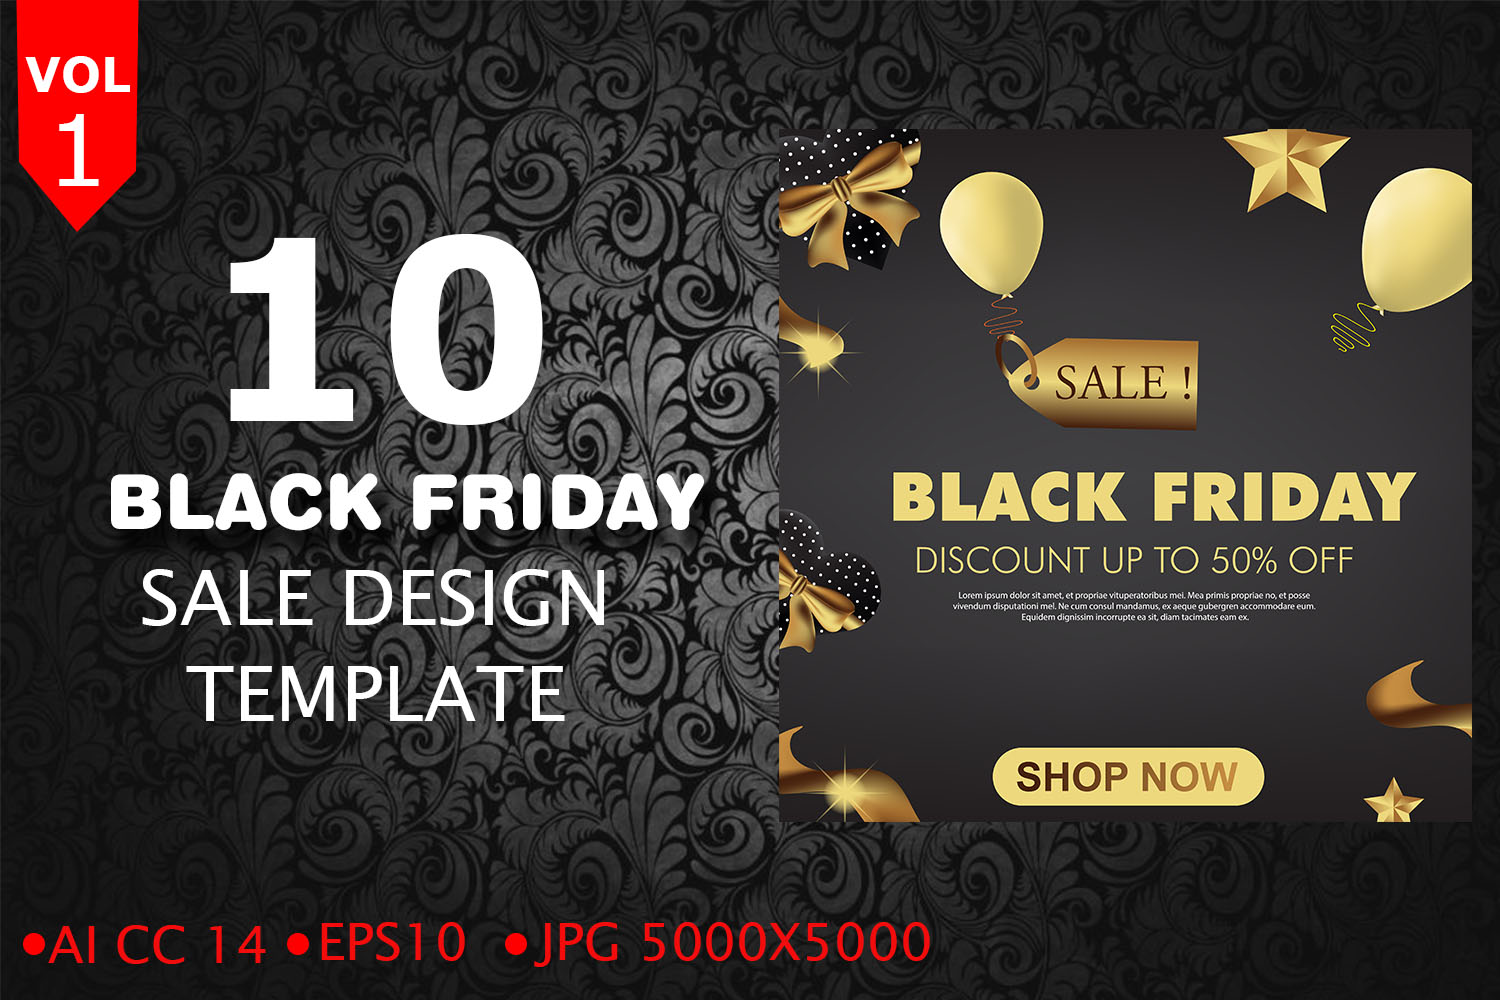 Black Friday Sale Template example image 1